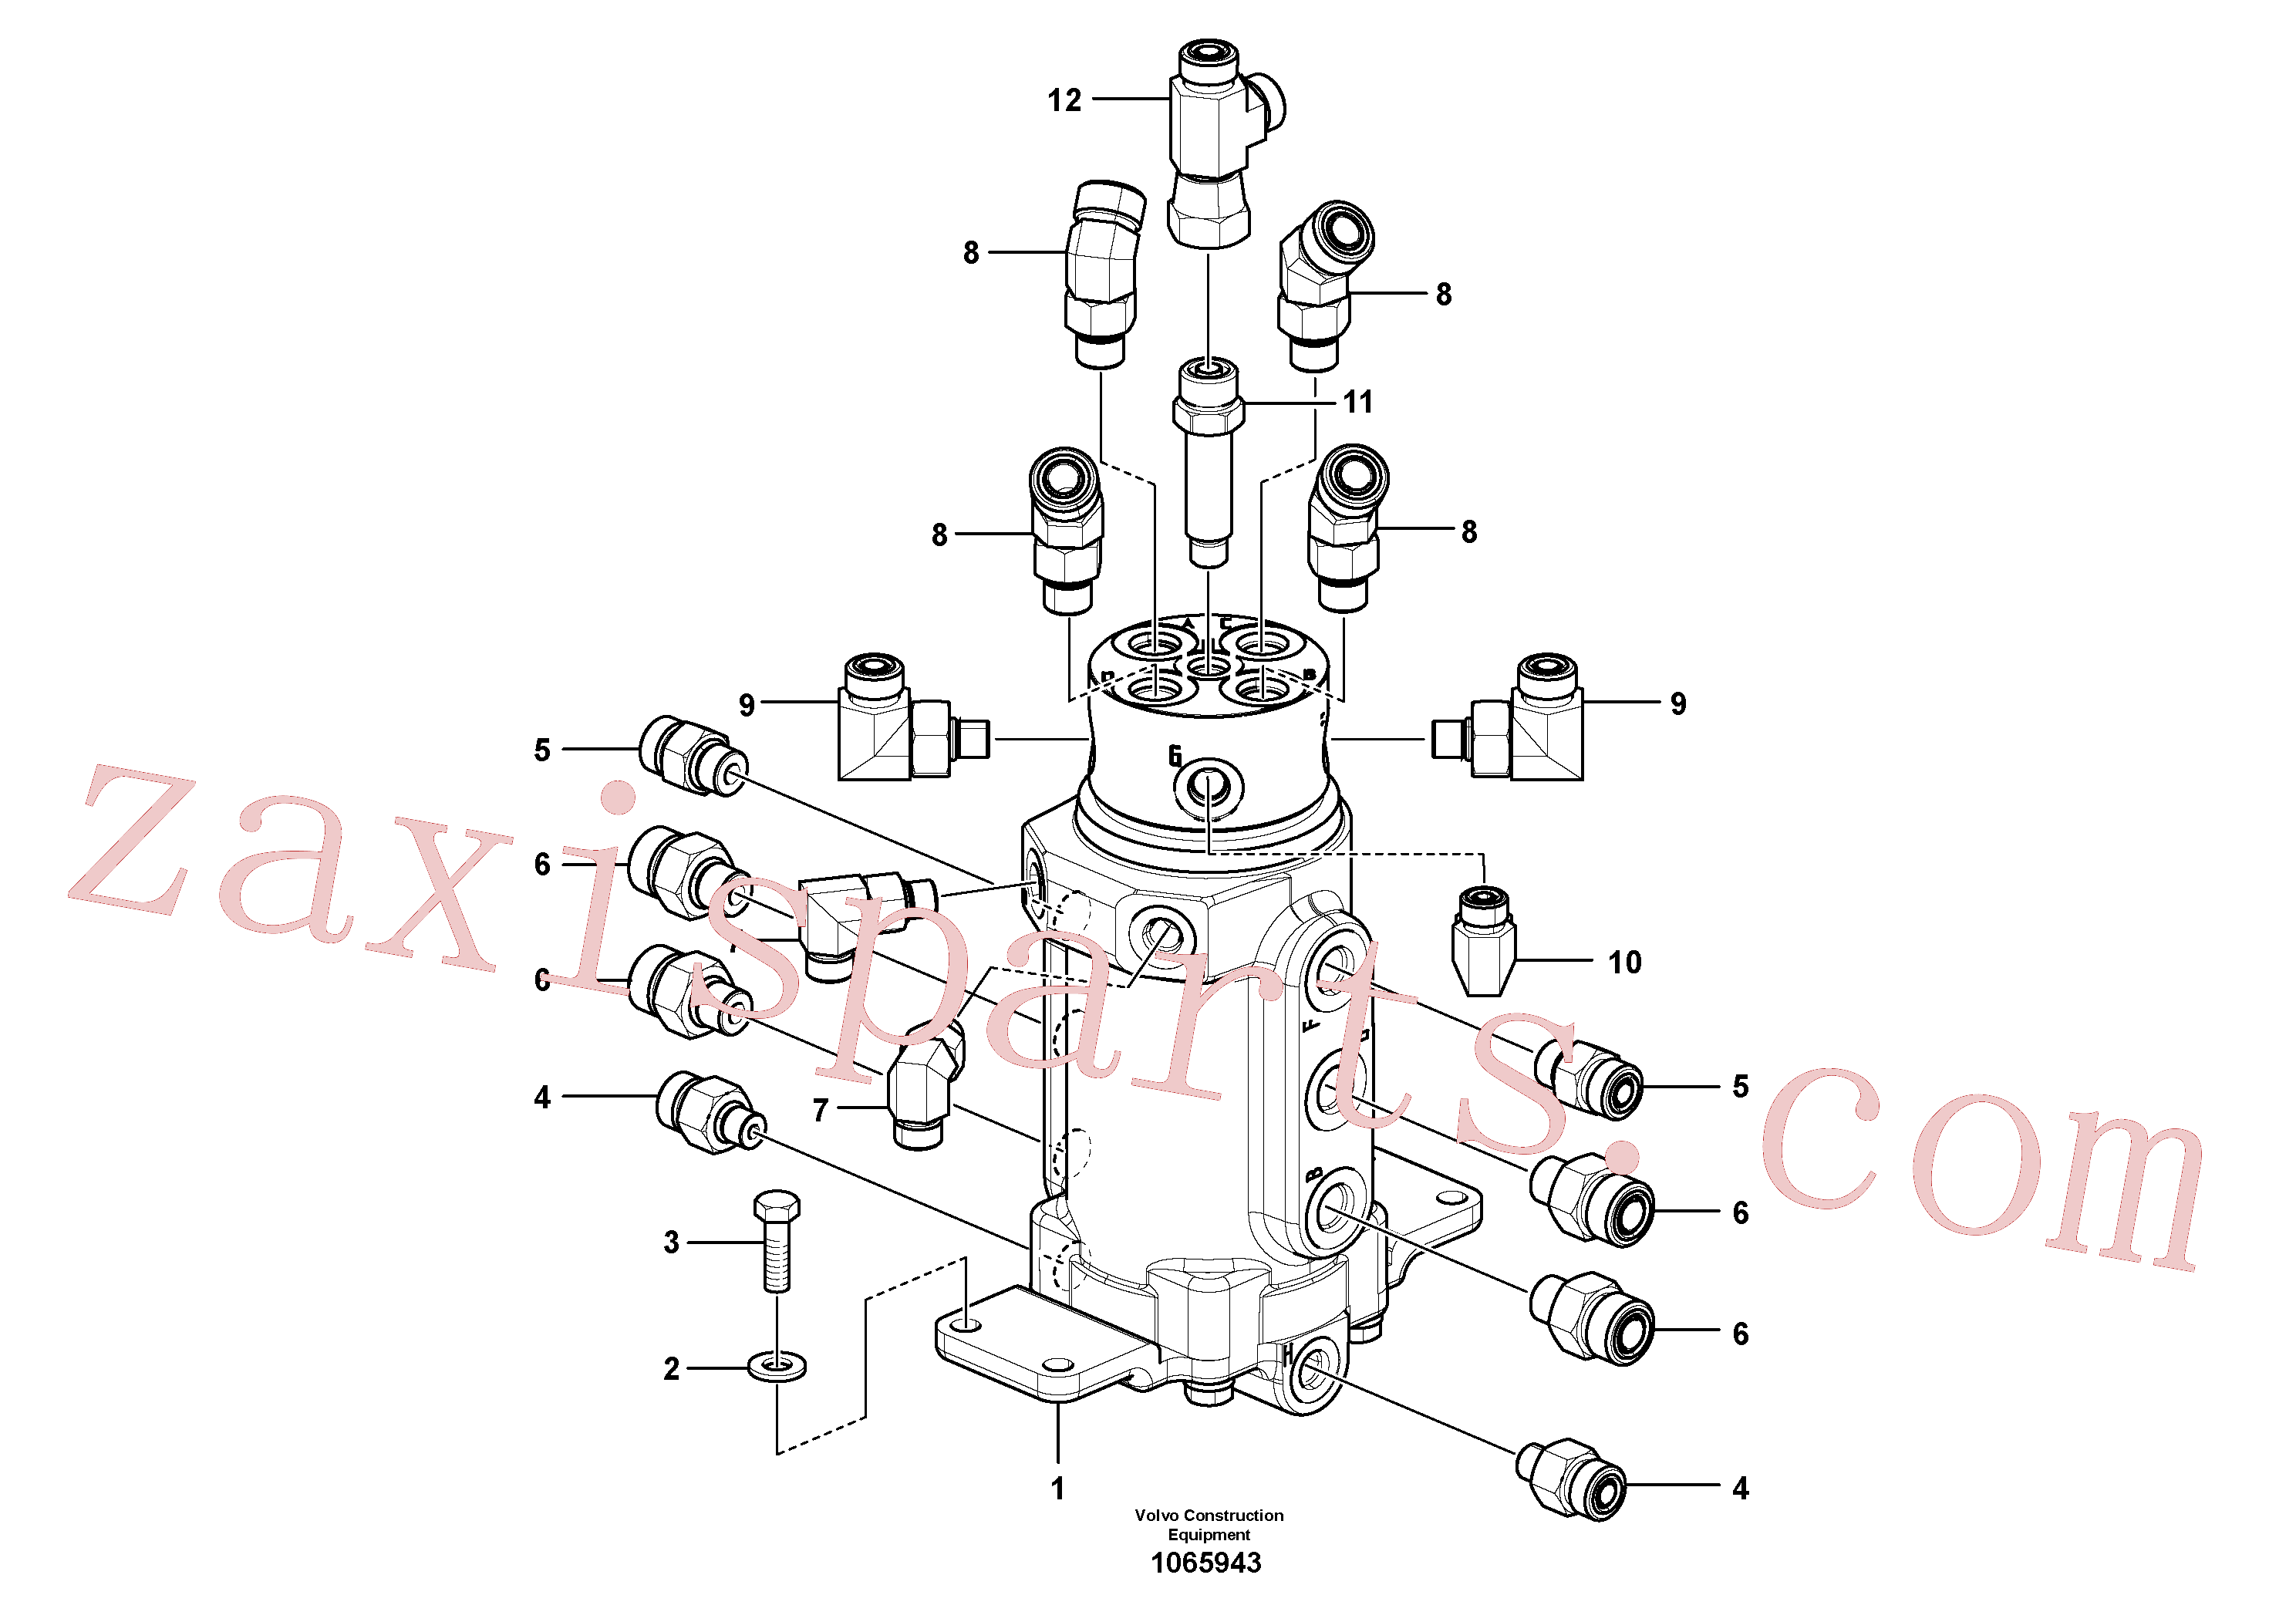 VOE937773 for Volvo Swivel joint equipment(1065943 assembly)